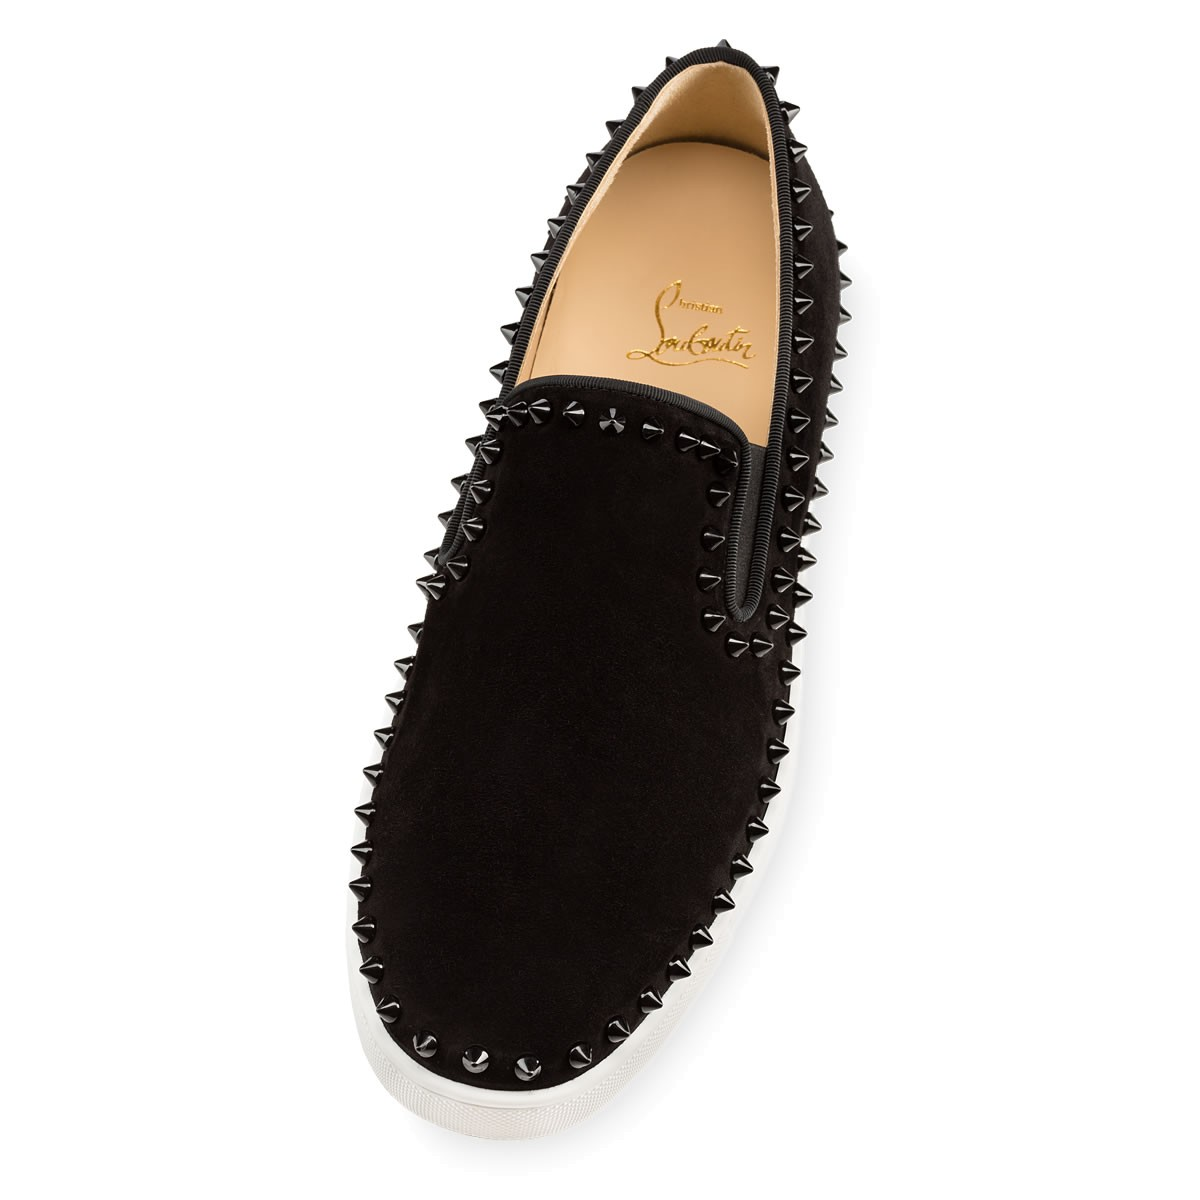 Shoes - Pik Boat Mens Flat - Christian Louboutin